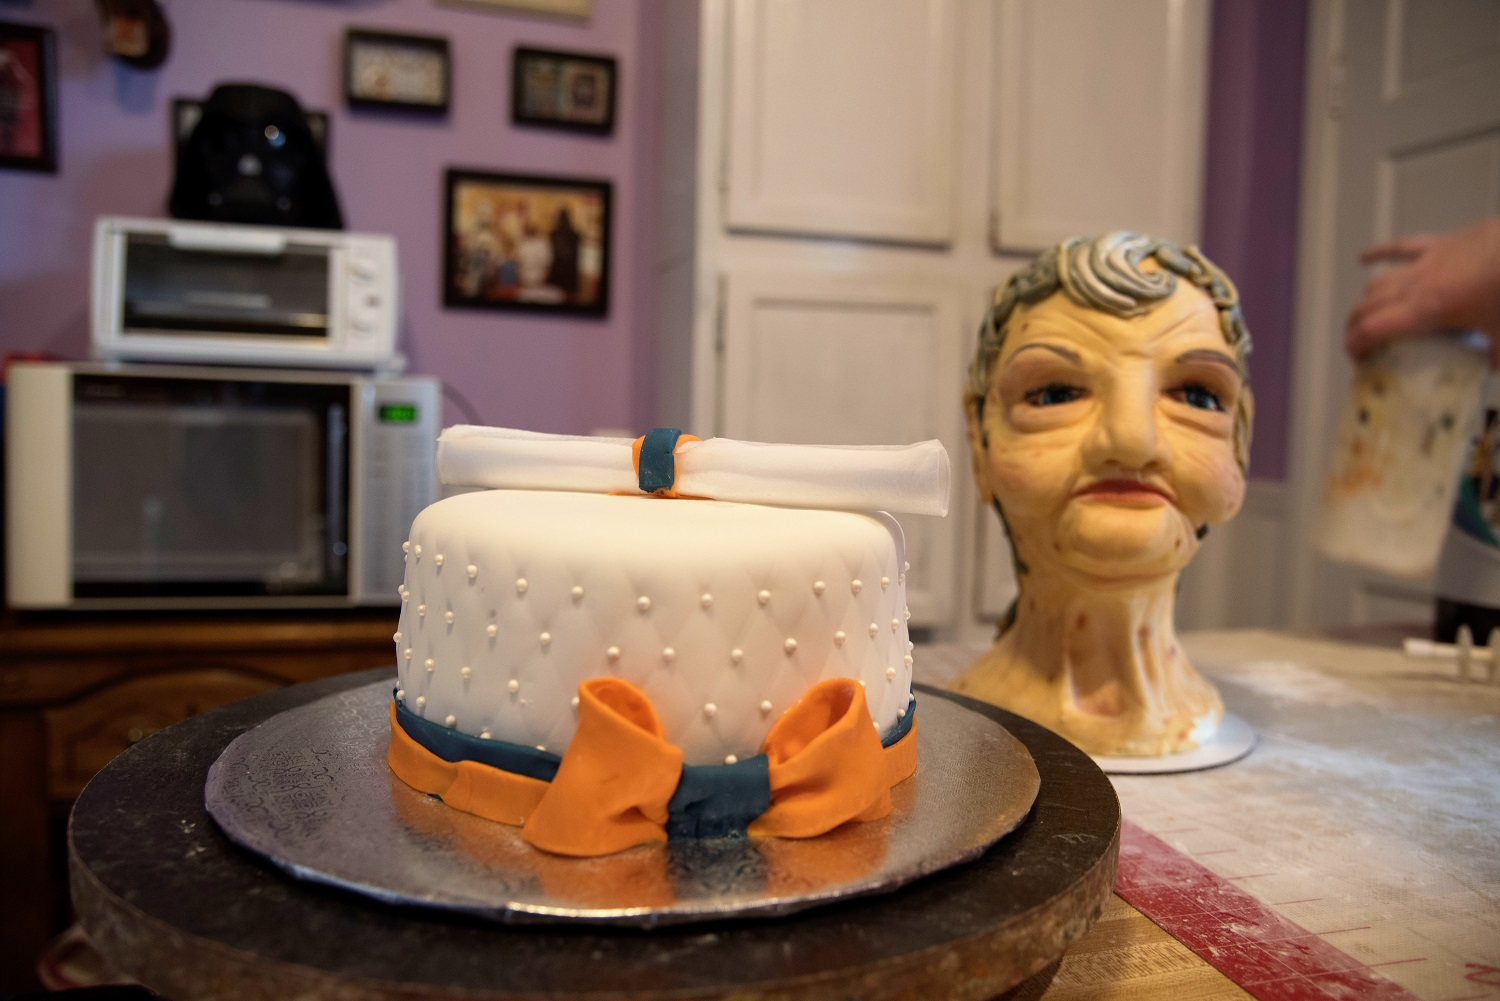 Mandi Buckalew's cakes are as different as her customers want them to be. (Brittany Faush / Alabama NewsCenter)